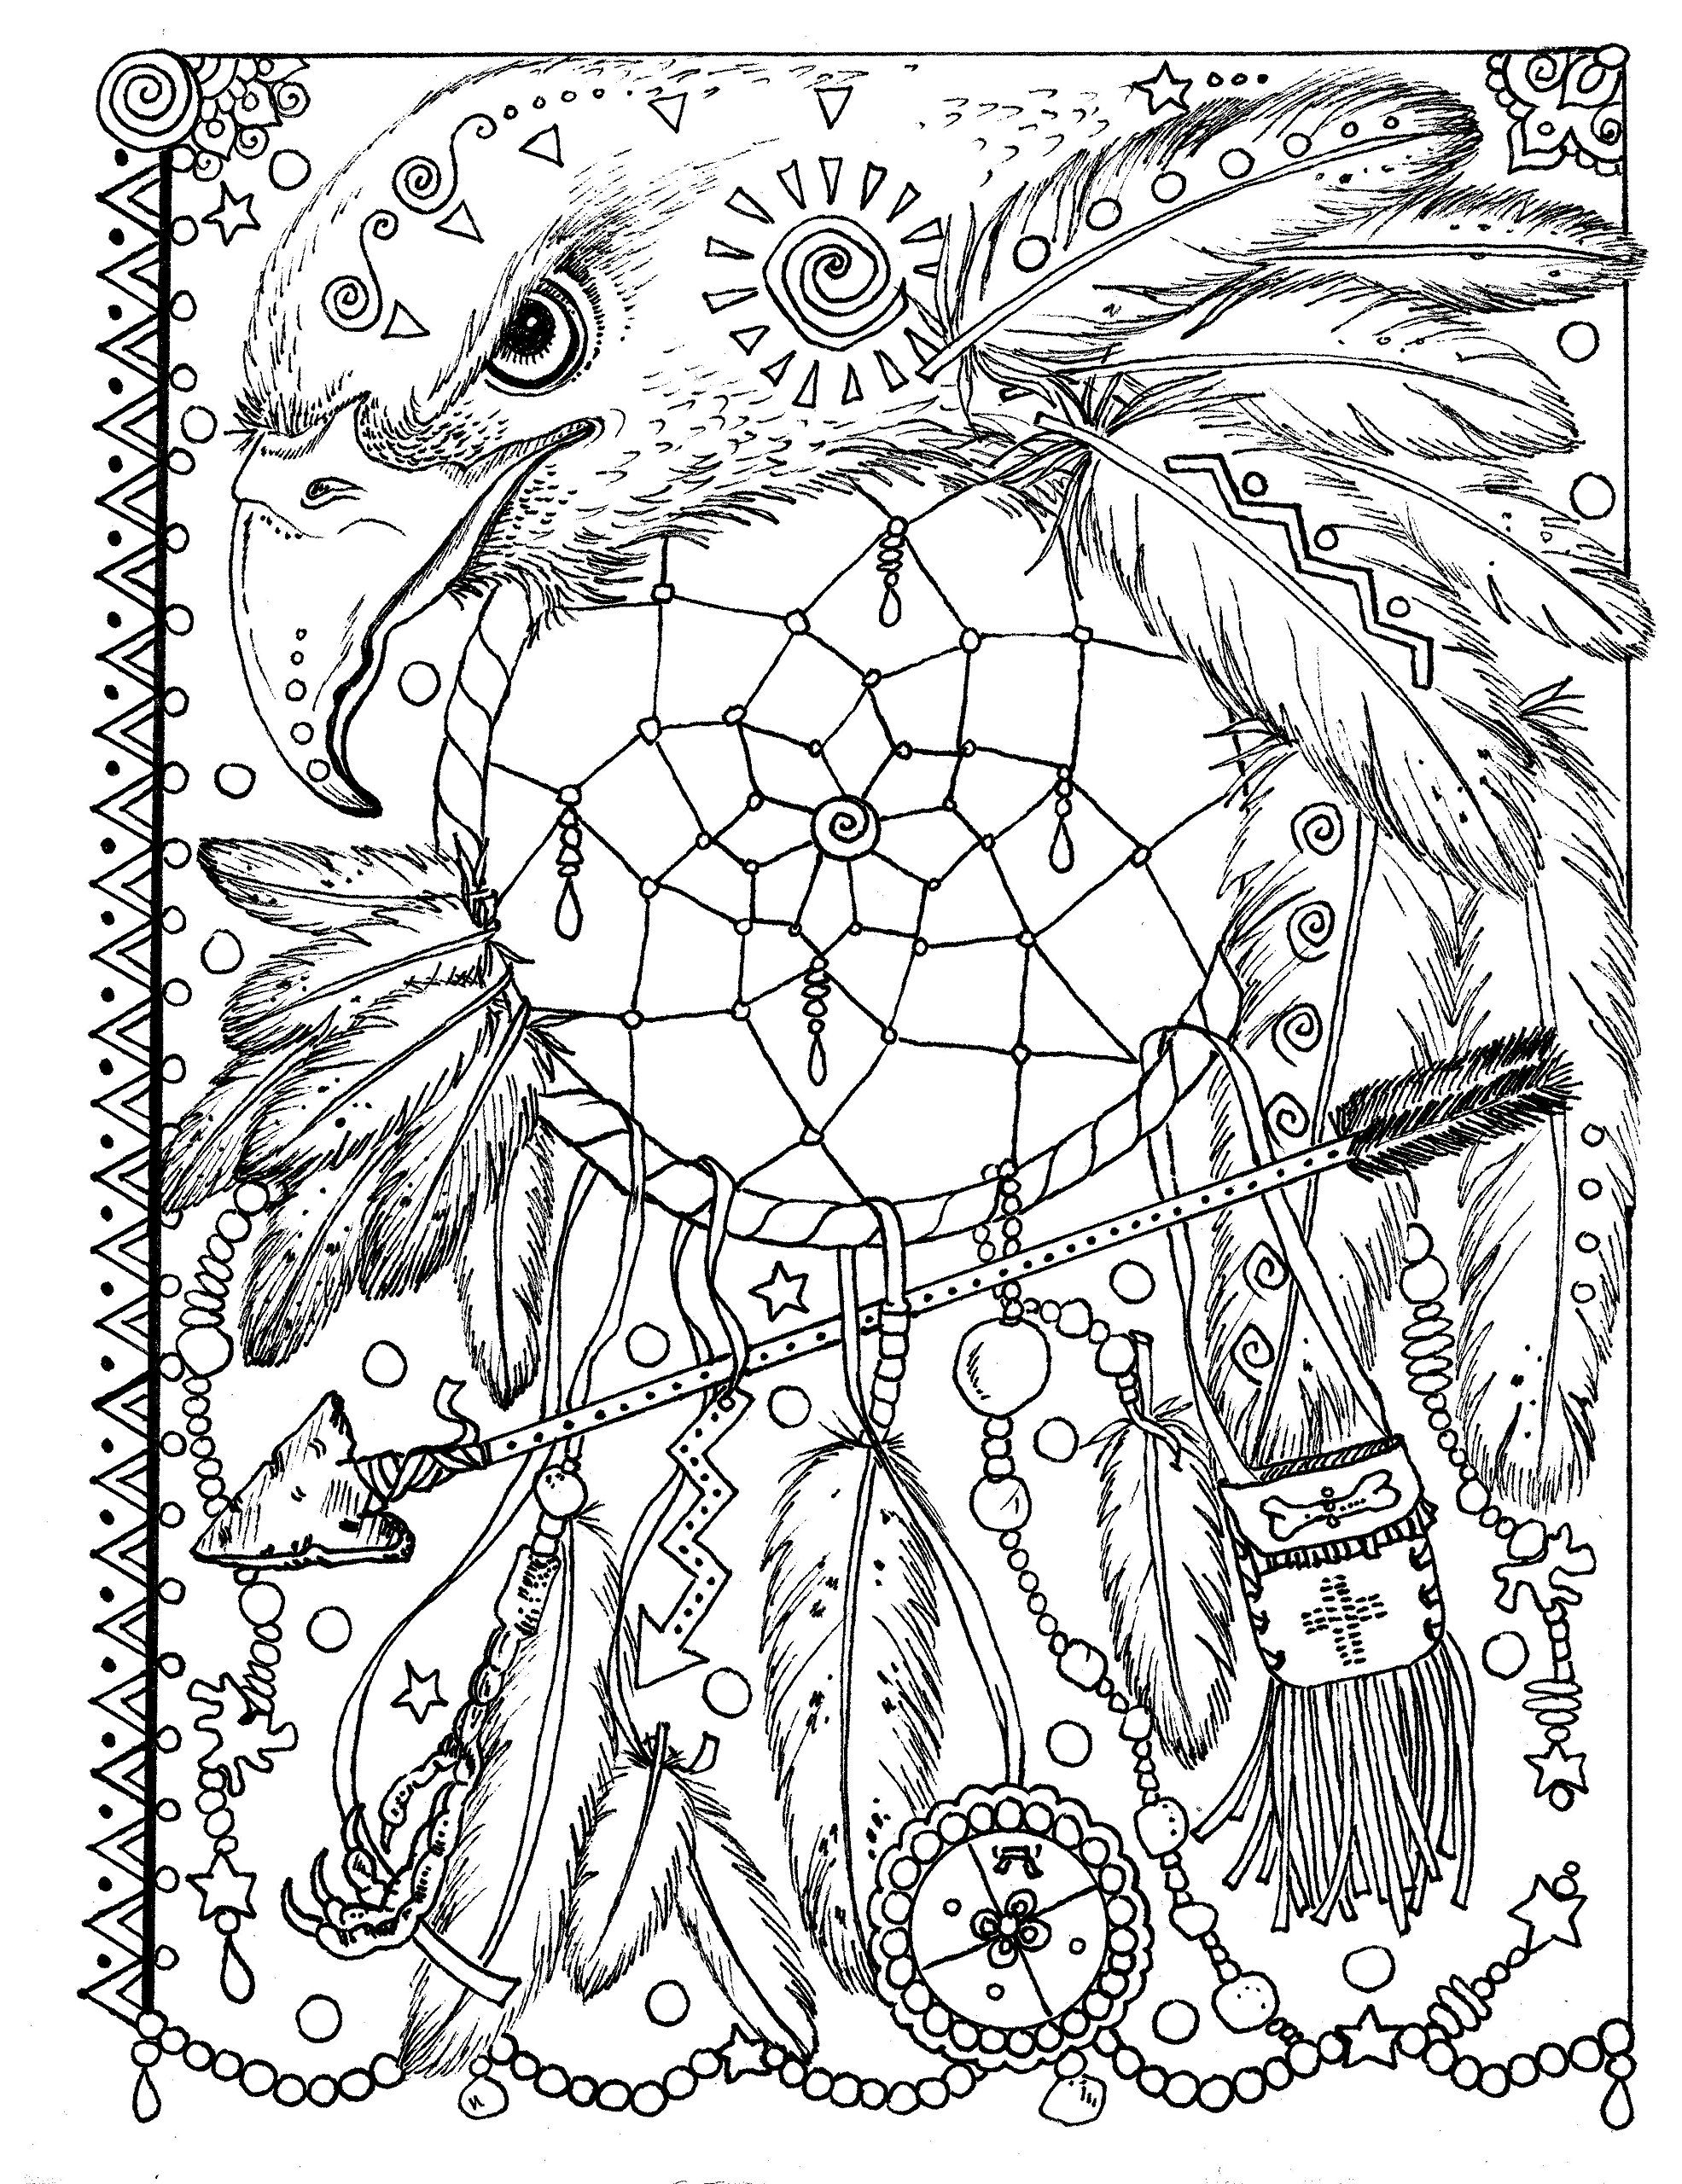 Animal Spirit Dreamcatchers Coloring Fun For All Ages Deborah